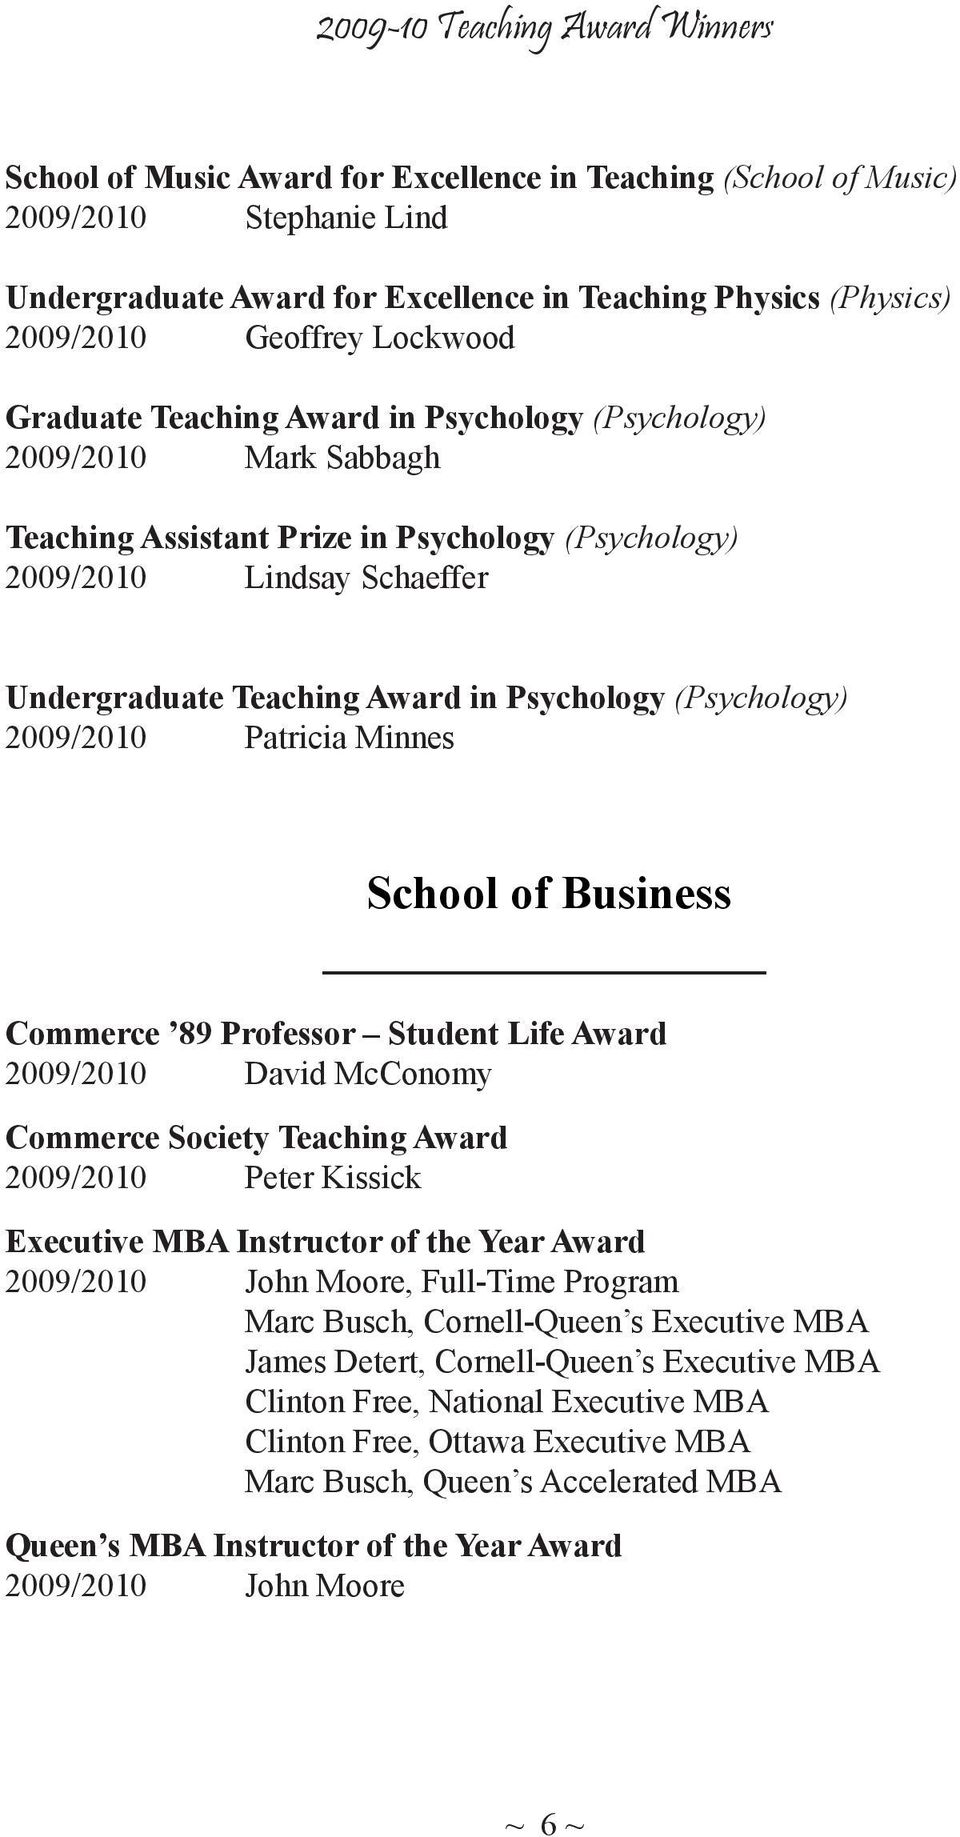 (Psychology) 2009/2010 Patricia Minnes School of Business Commerce 89 Professor Student Life Award 2009/2010 David McConomy Commerce Society Teaching Award 2009/2010 Peter Kissick Executive MBA